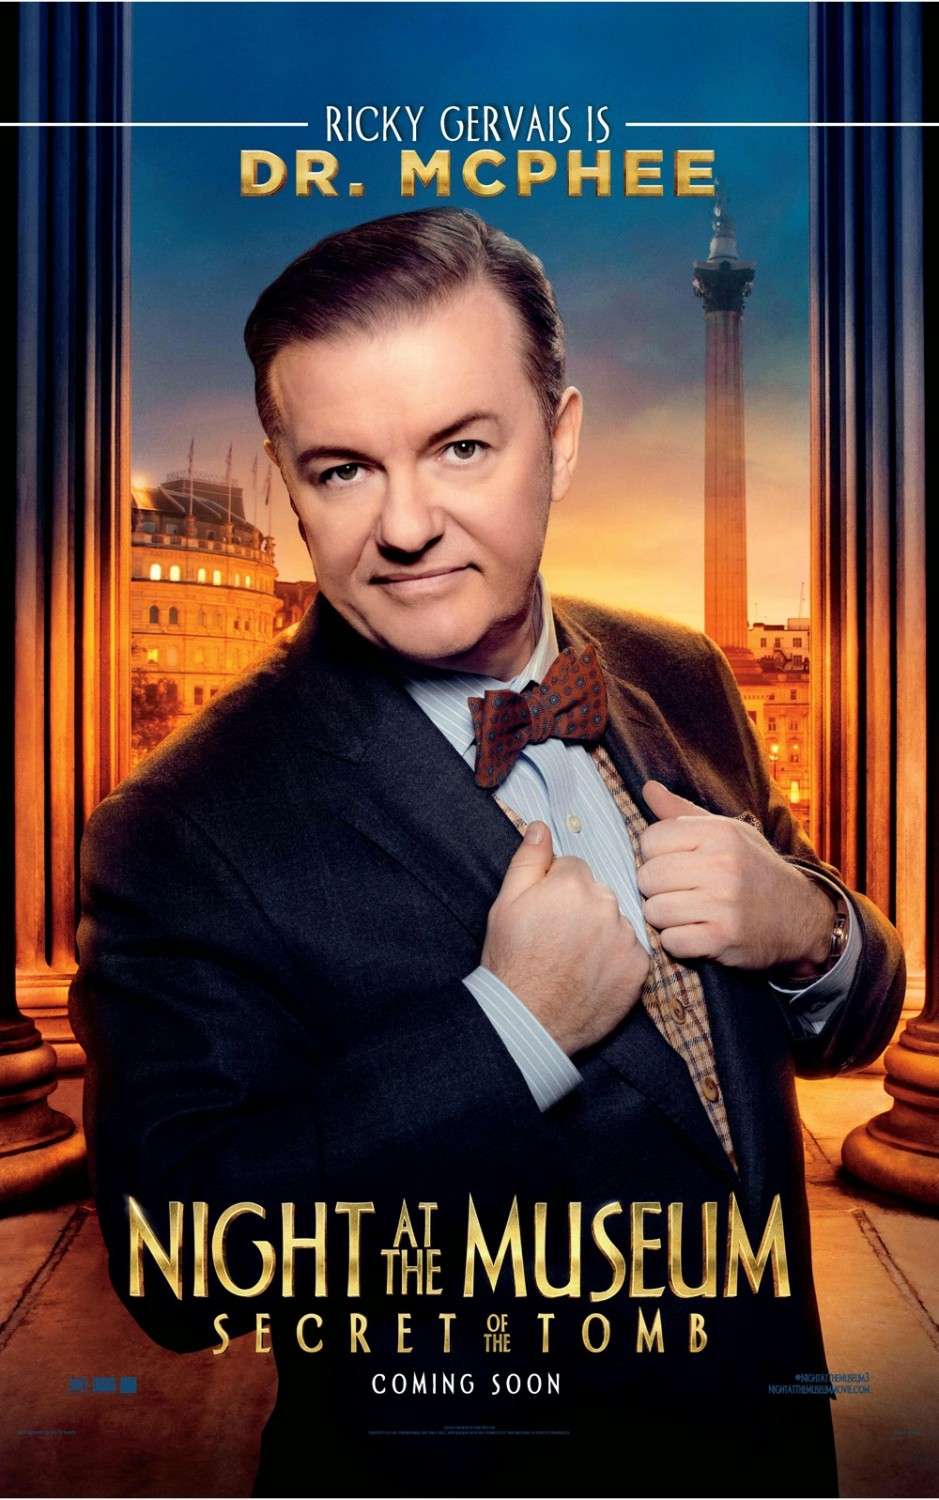 Night at the Museum Secret of the Tomb-Official Poster-17NOVEMBRO2014-03